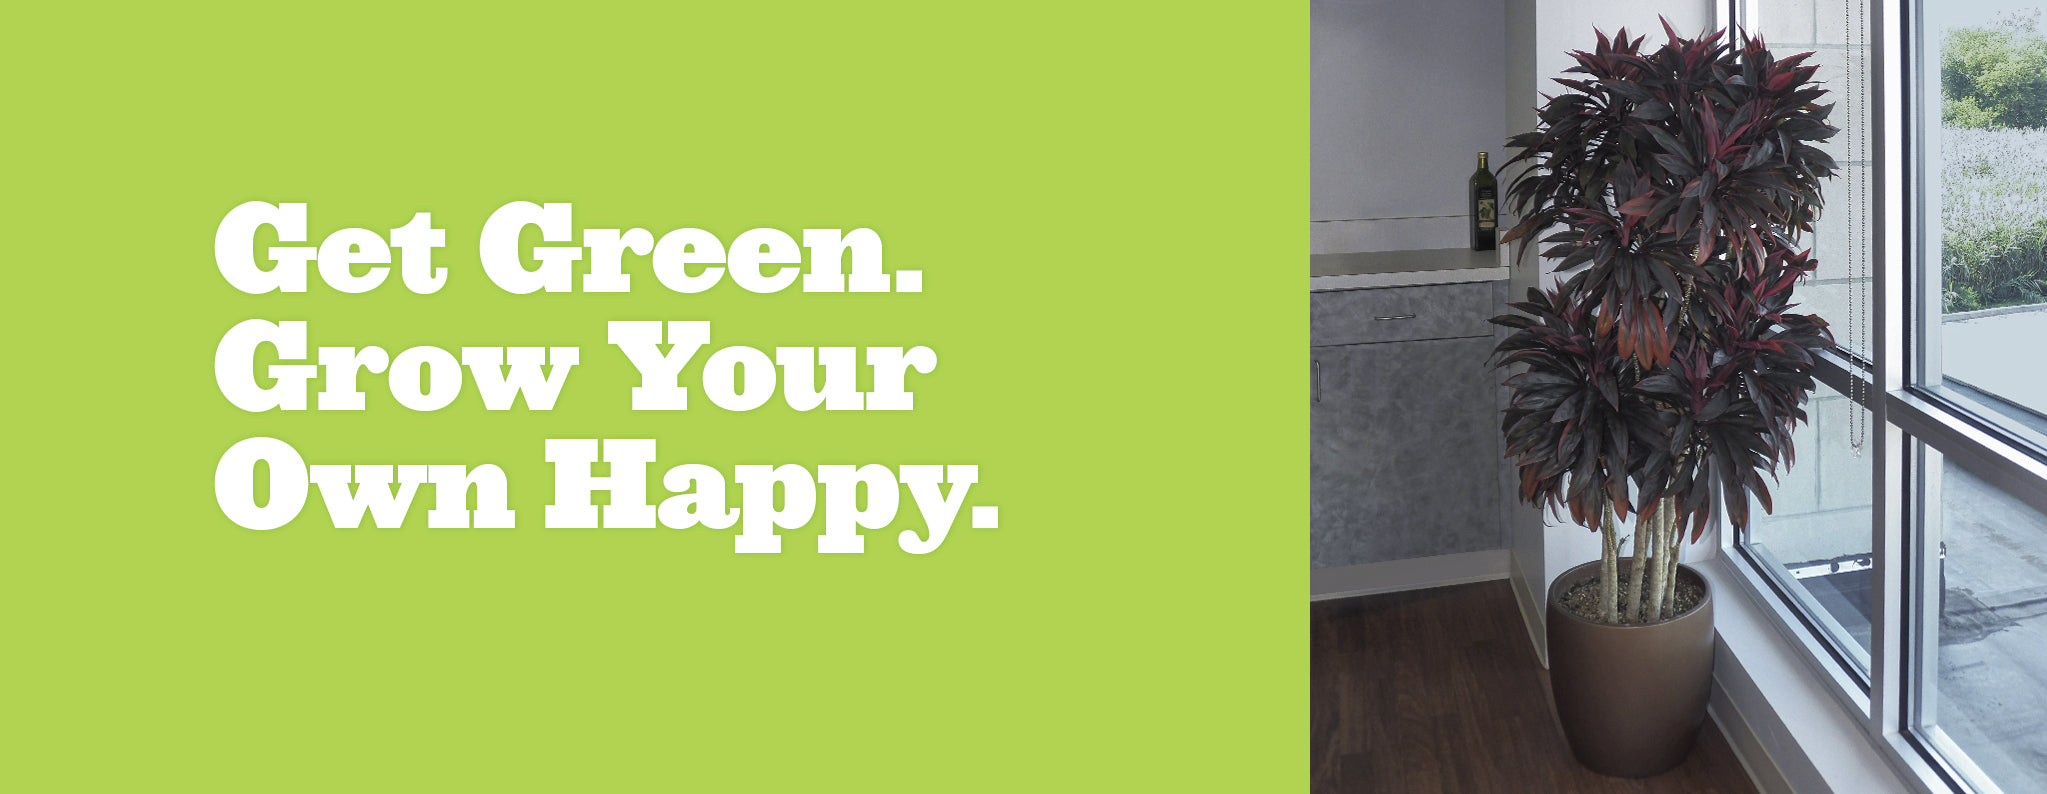 Get Green. Grow your own happy. Bravo Planter